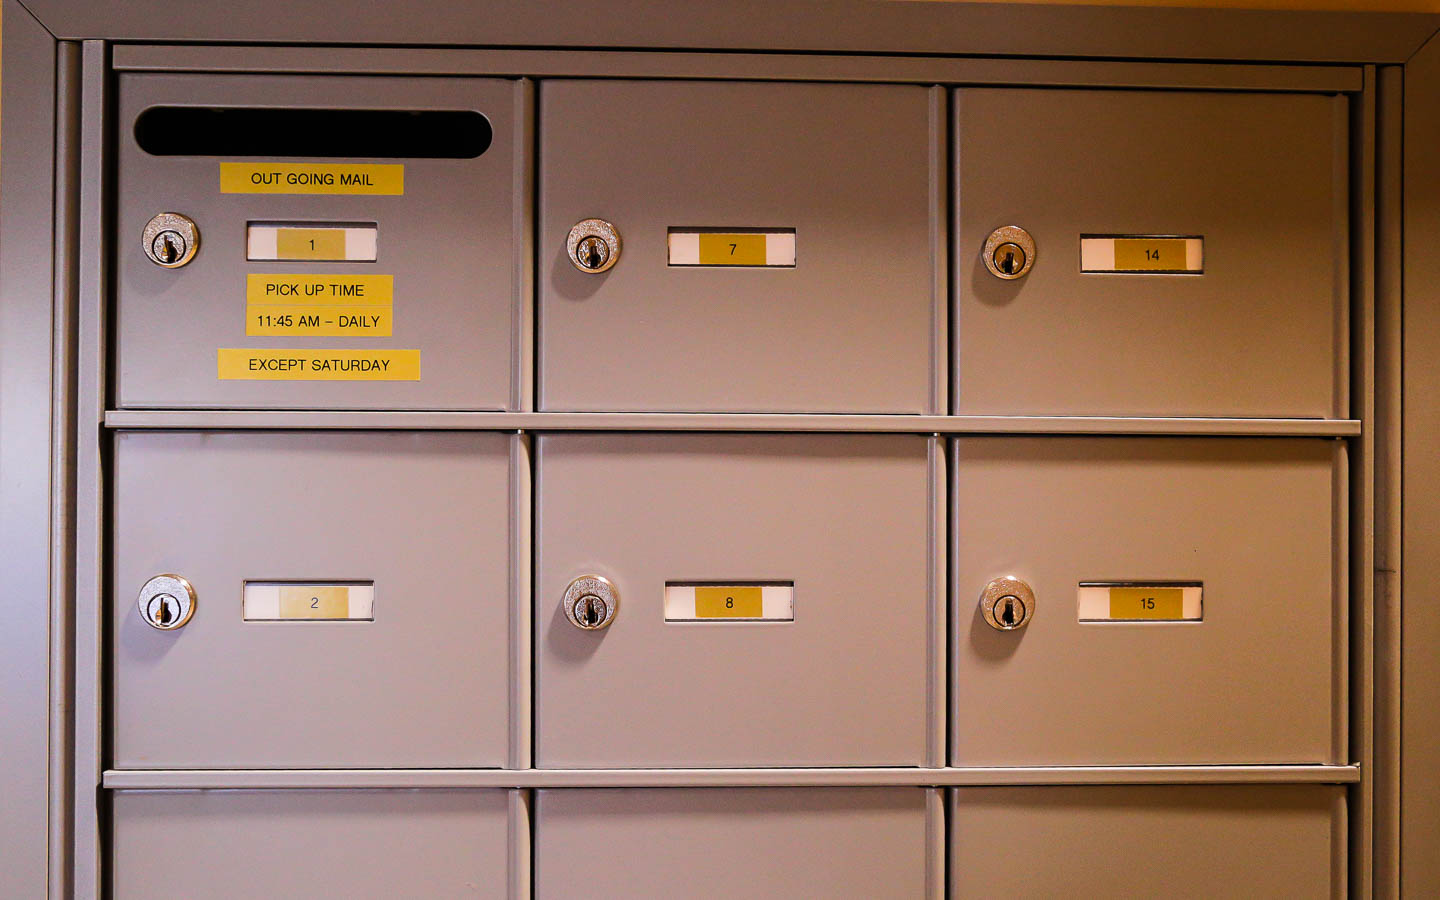 physical mailboxes for business address forwards